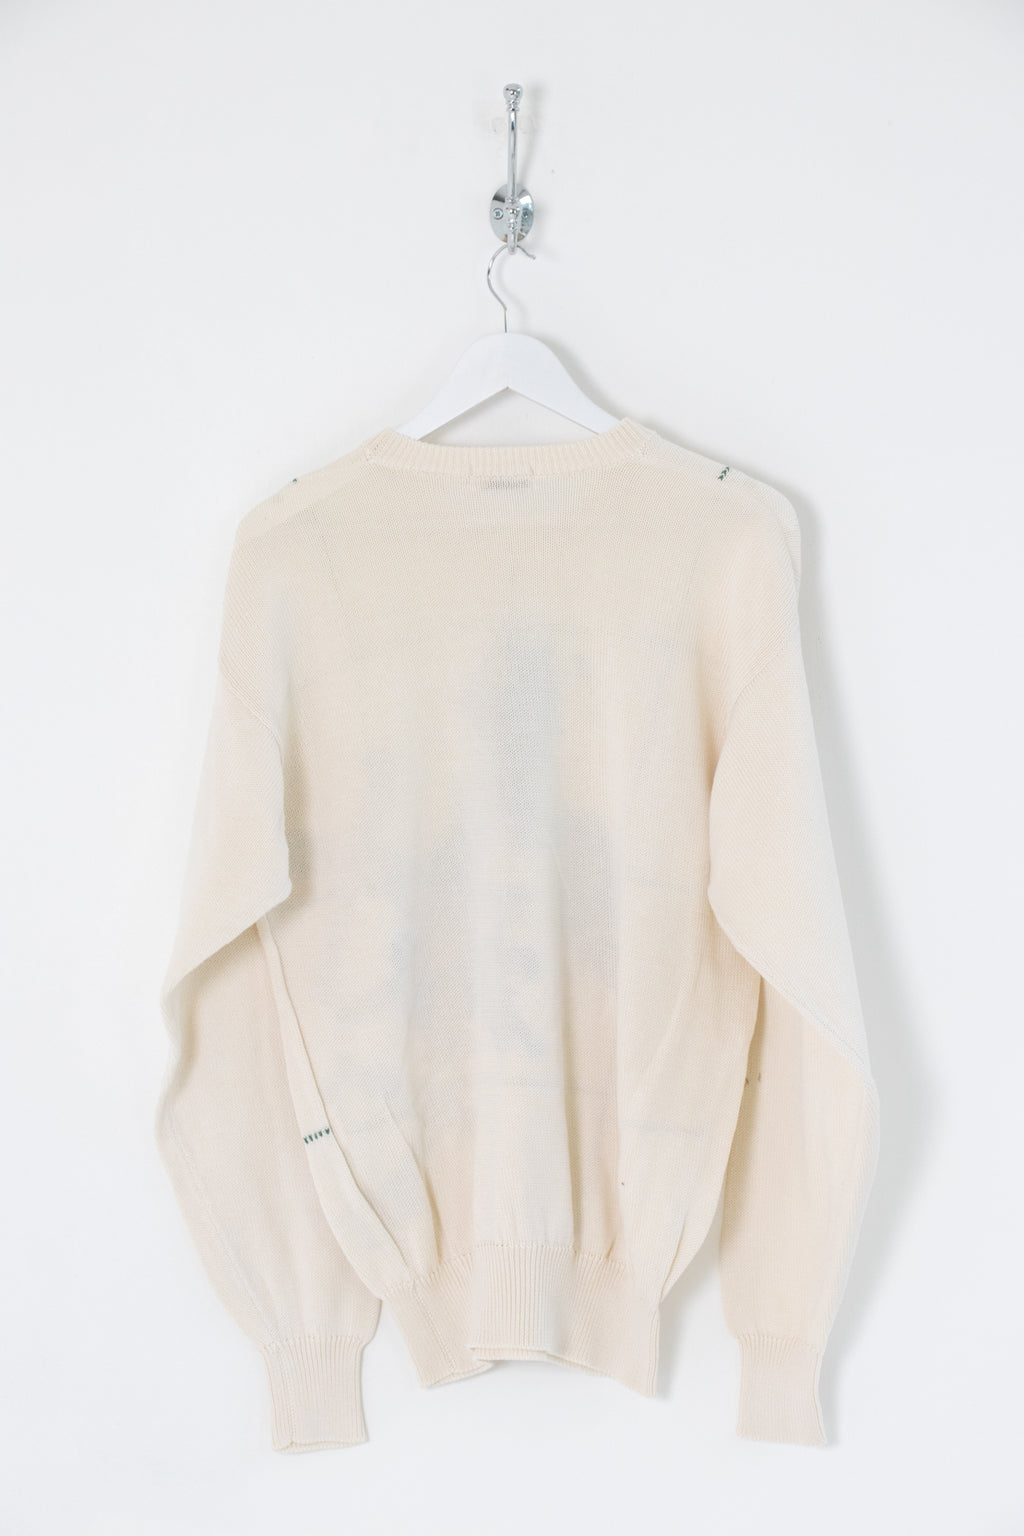 Burberry Jumper (L)